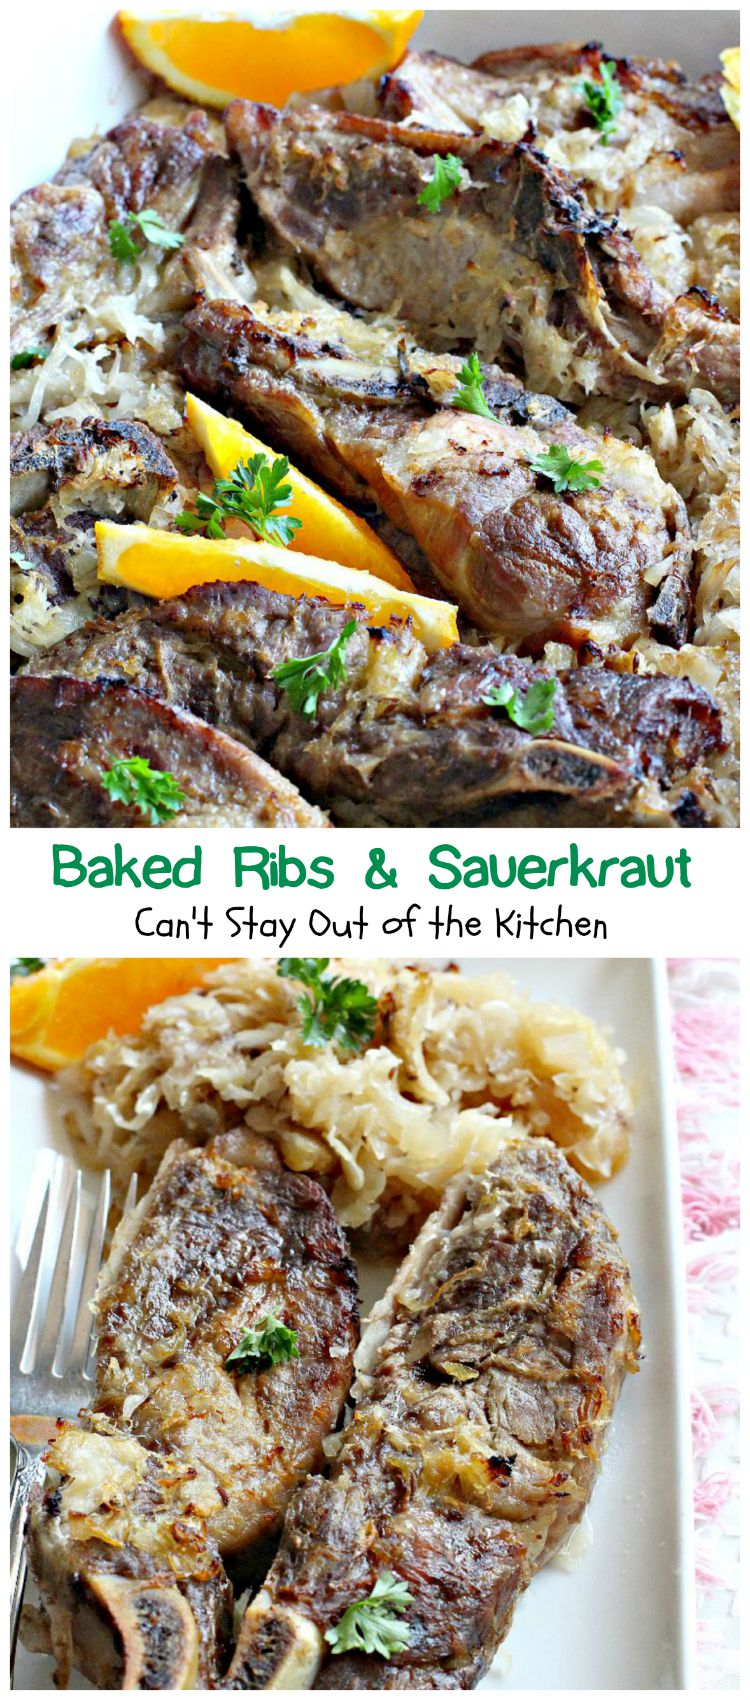 Baked Ribs and Sauerkraut | Can't Stay Out of the Kitchen